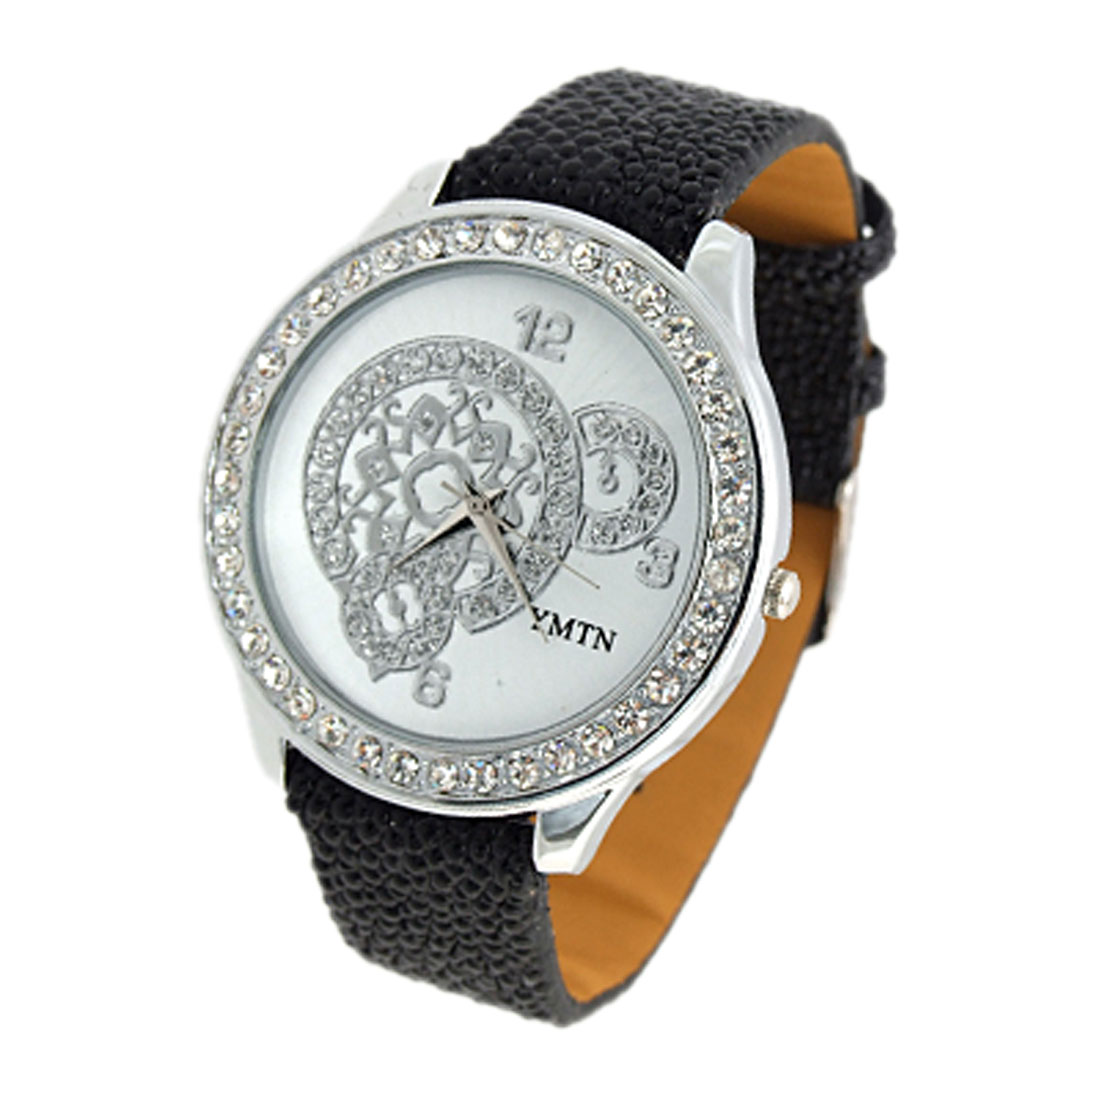 Exquisite Jewelry Simulated Crystal Beads Inlay Quartz Wristwatches - Black Strap